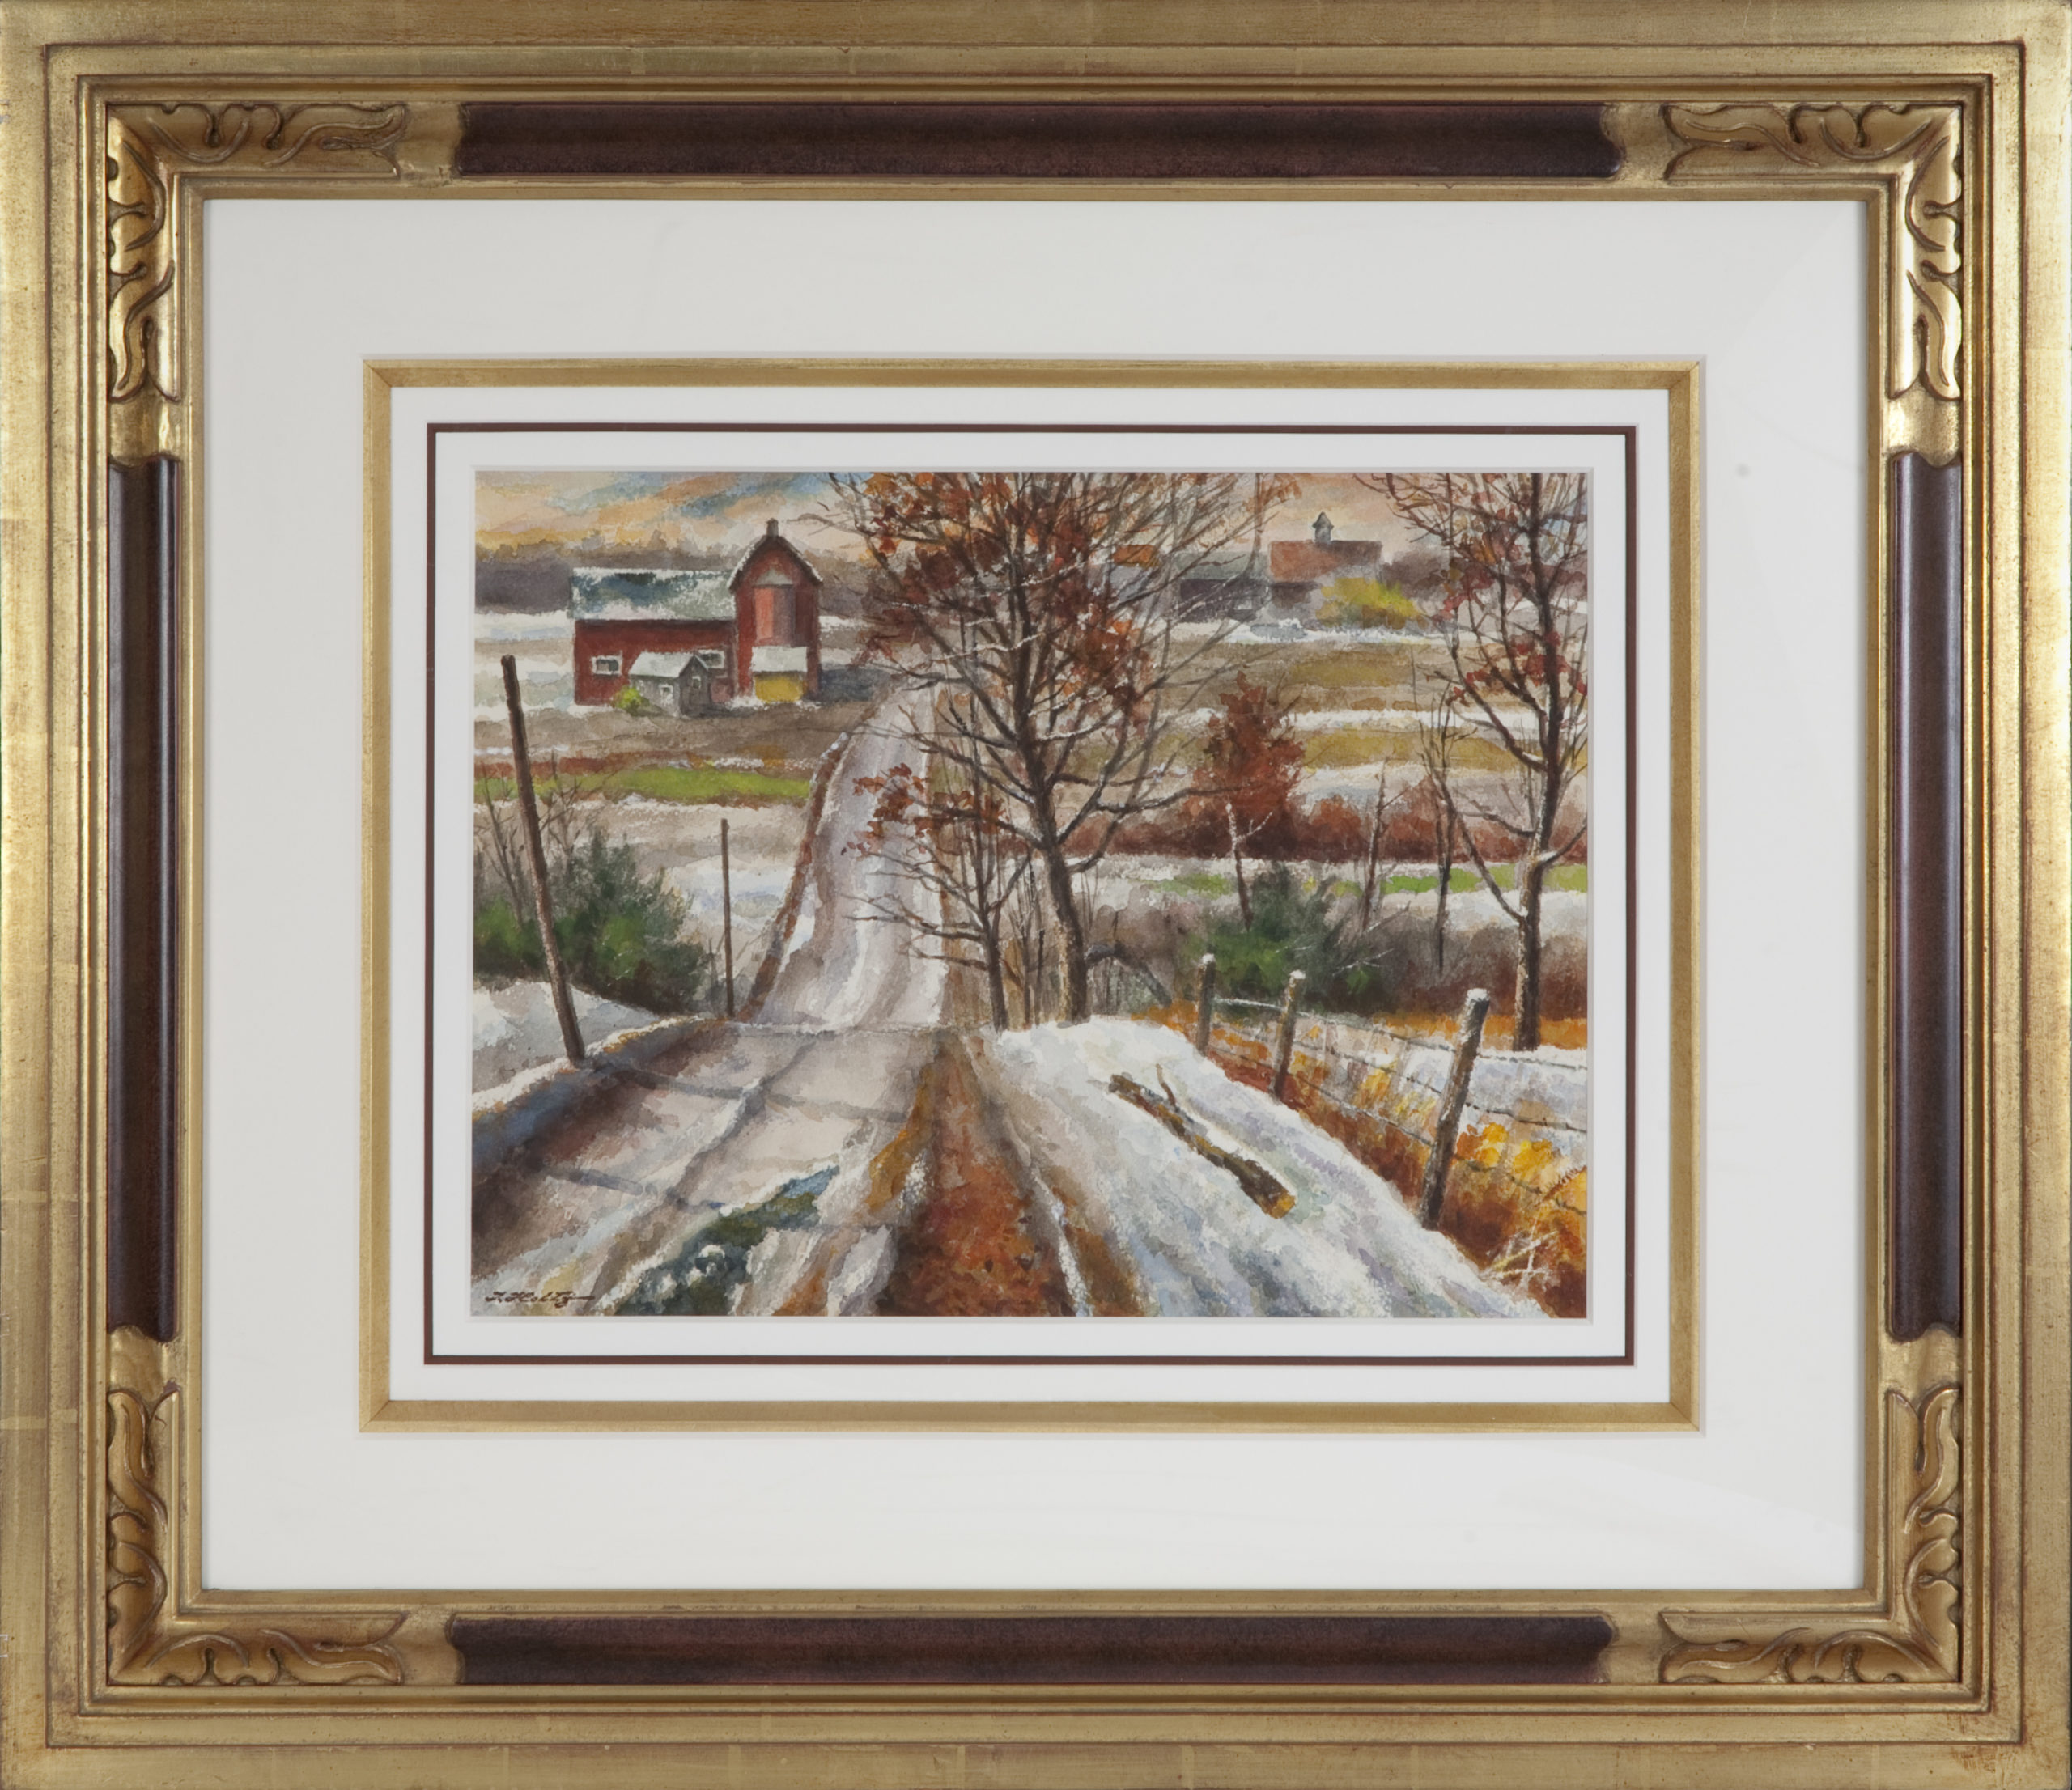 083 The Road to Monticello 1965 - Watercolor - 16 x 12 - Frame: 29 x 25.25 x 2